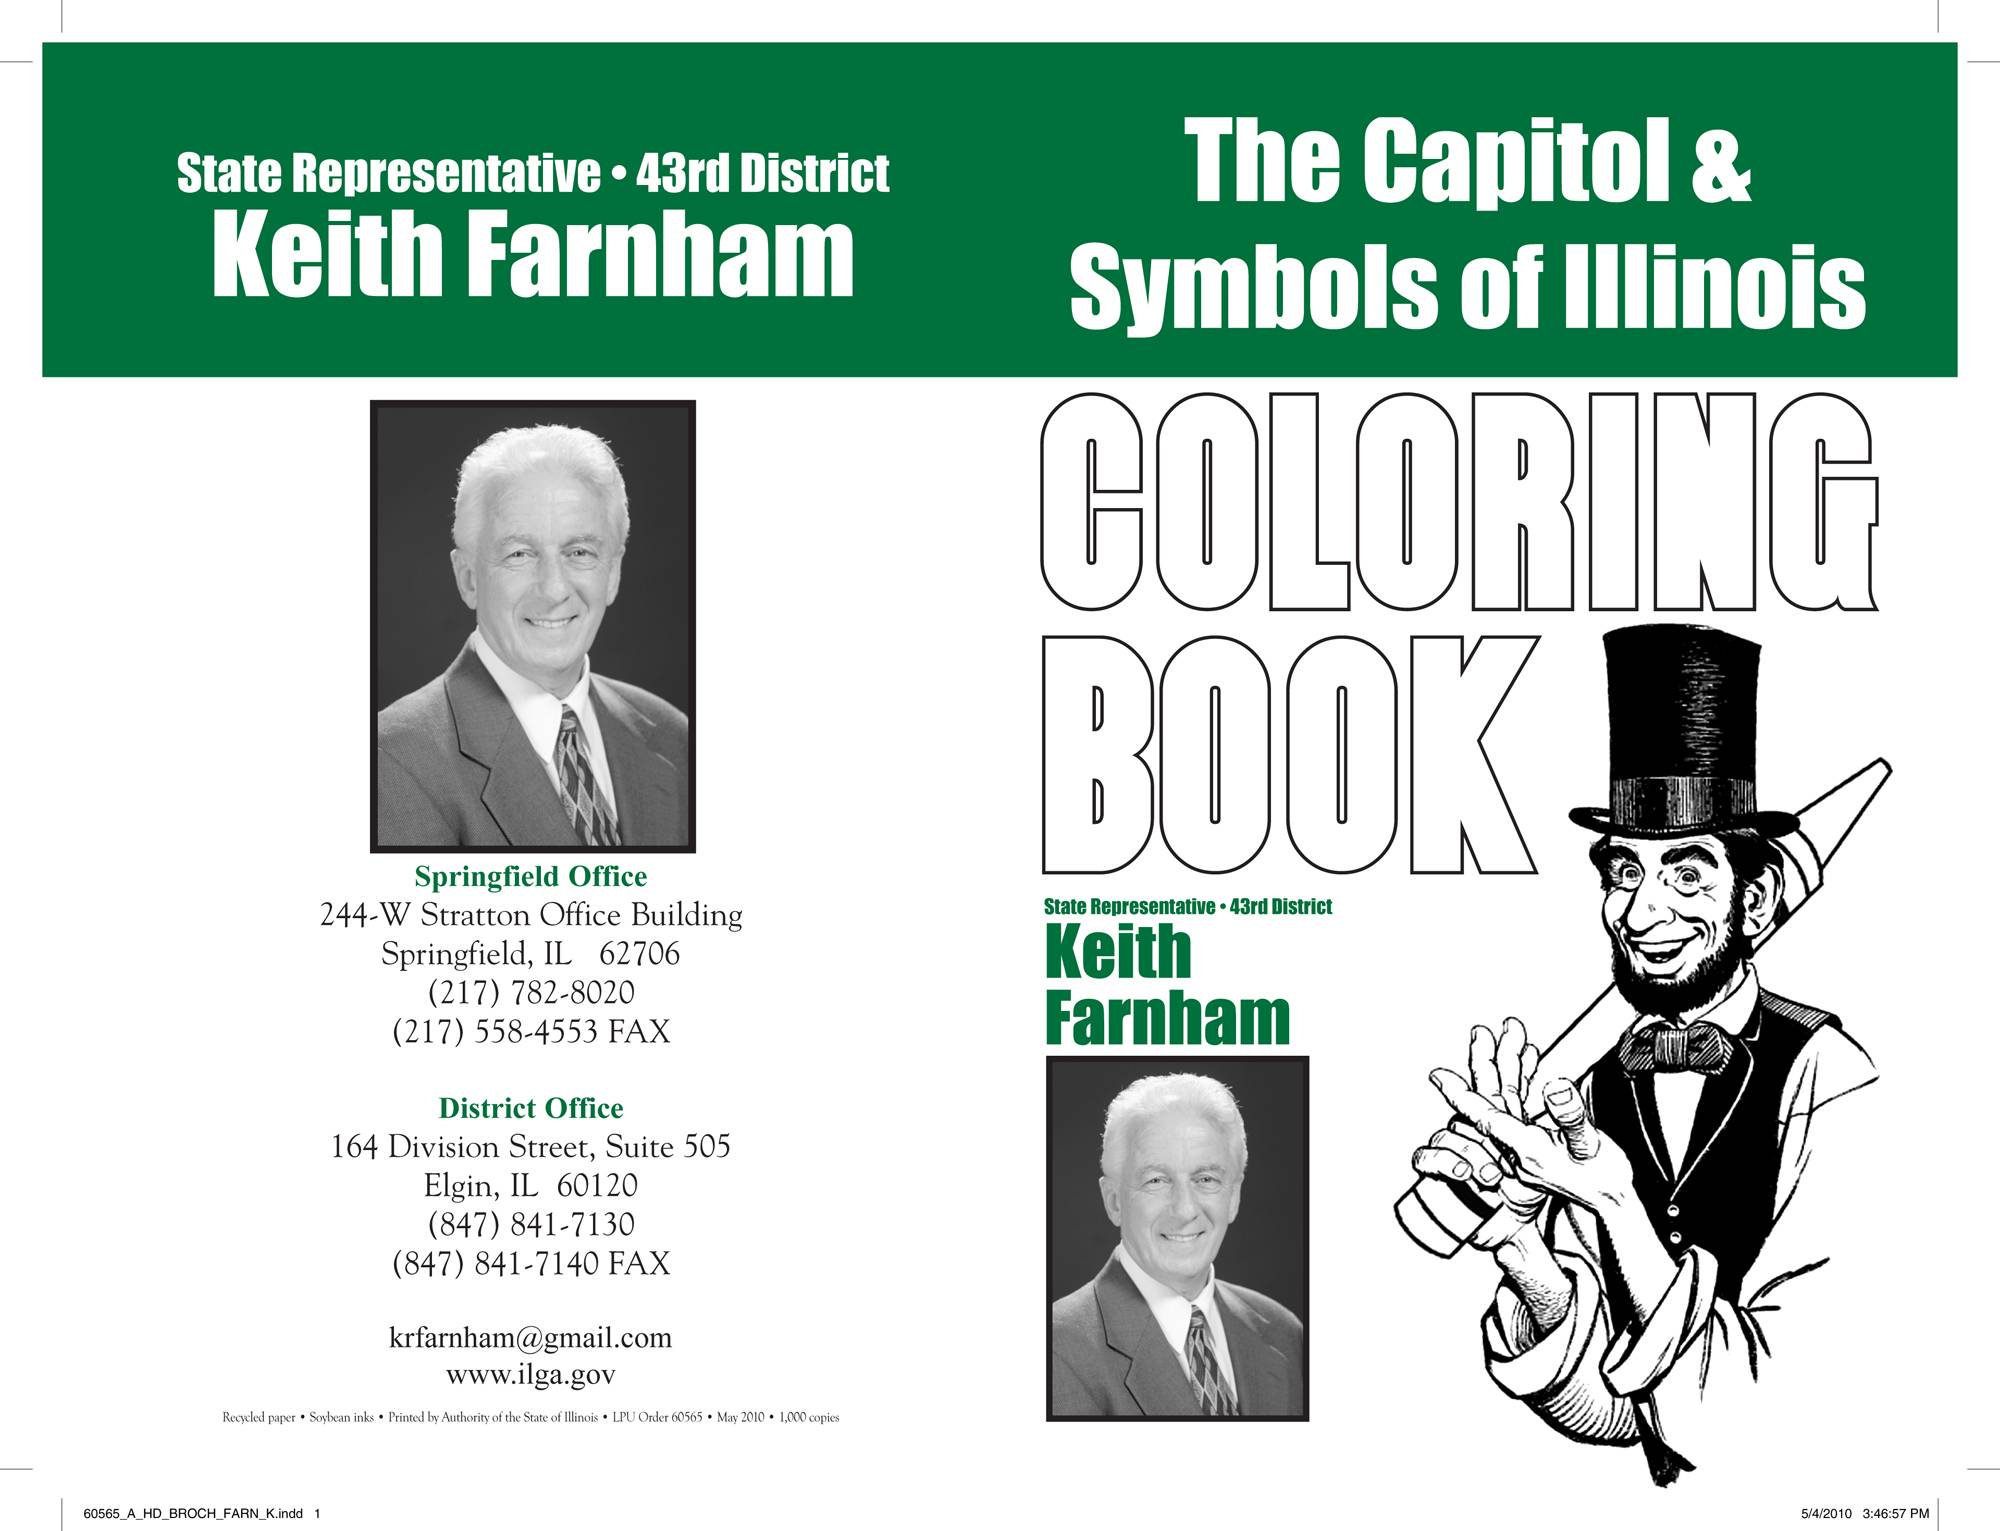 A coloring book distributed by former state Rep. Keith Farnham.